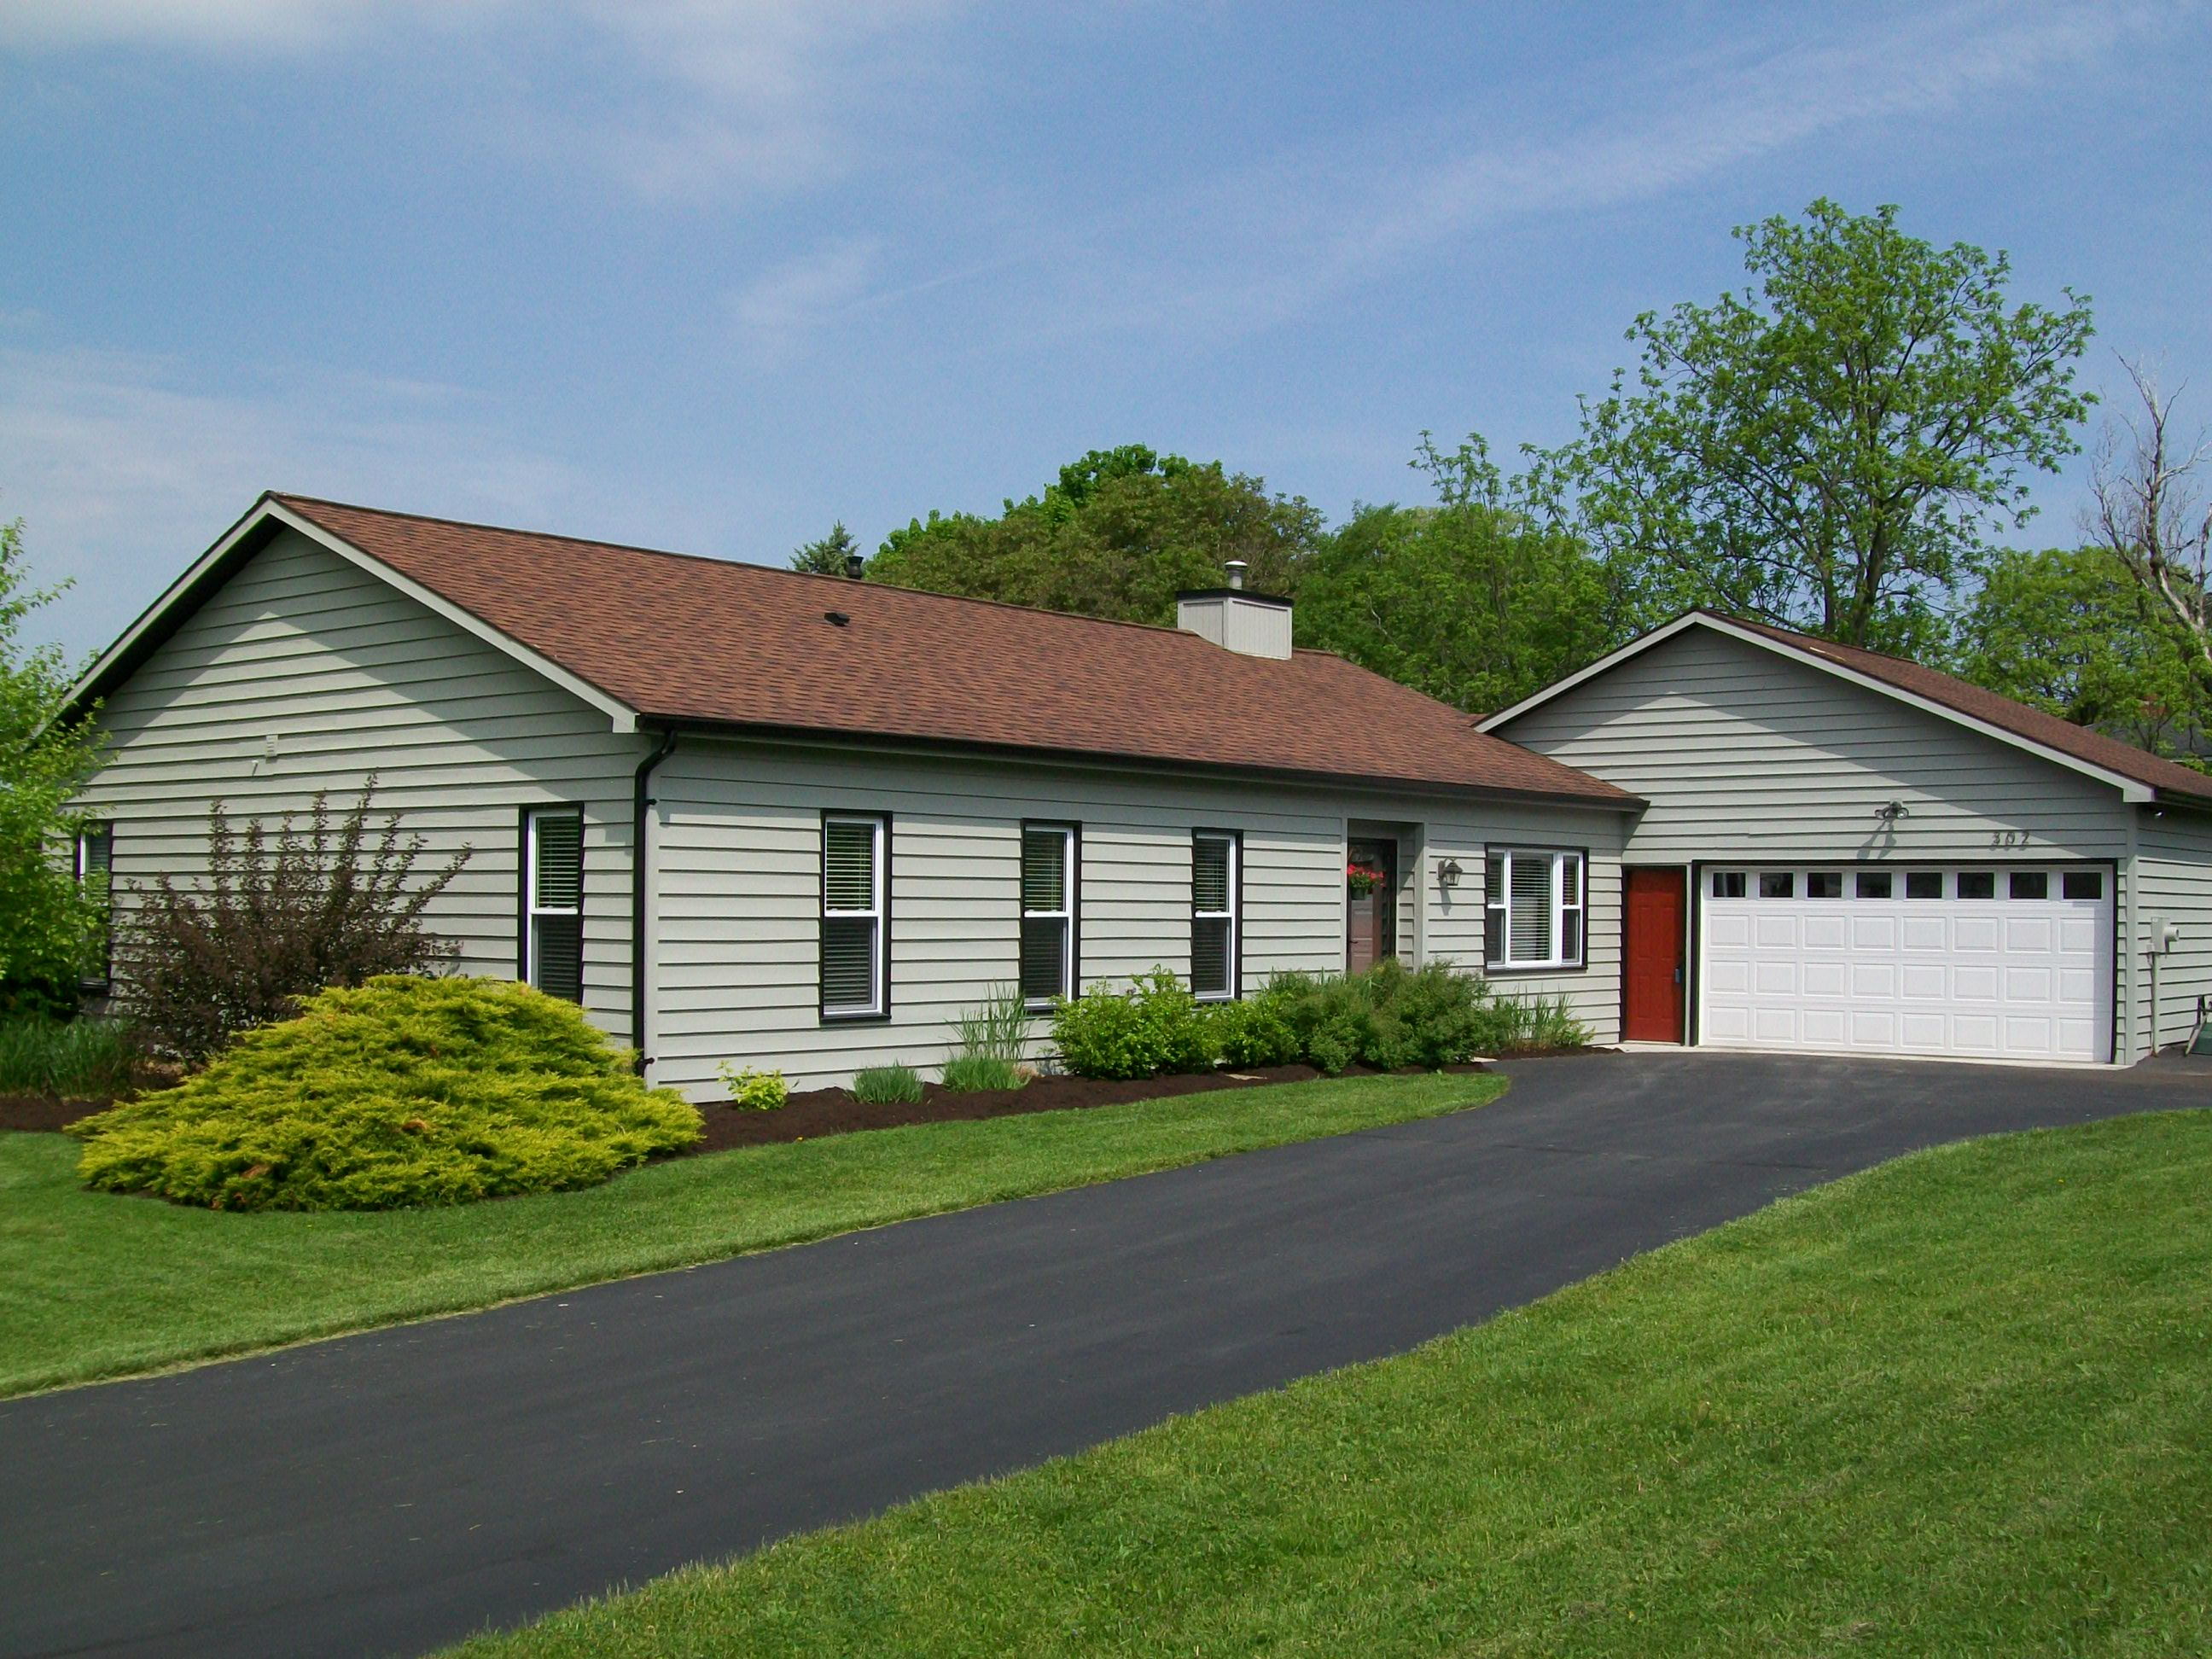 at for new massachusetts bluffs ny cottages cabins in sale today houses england travel mv oak gingerbread campground